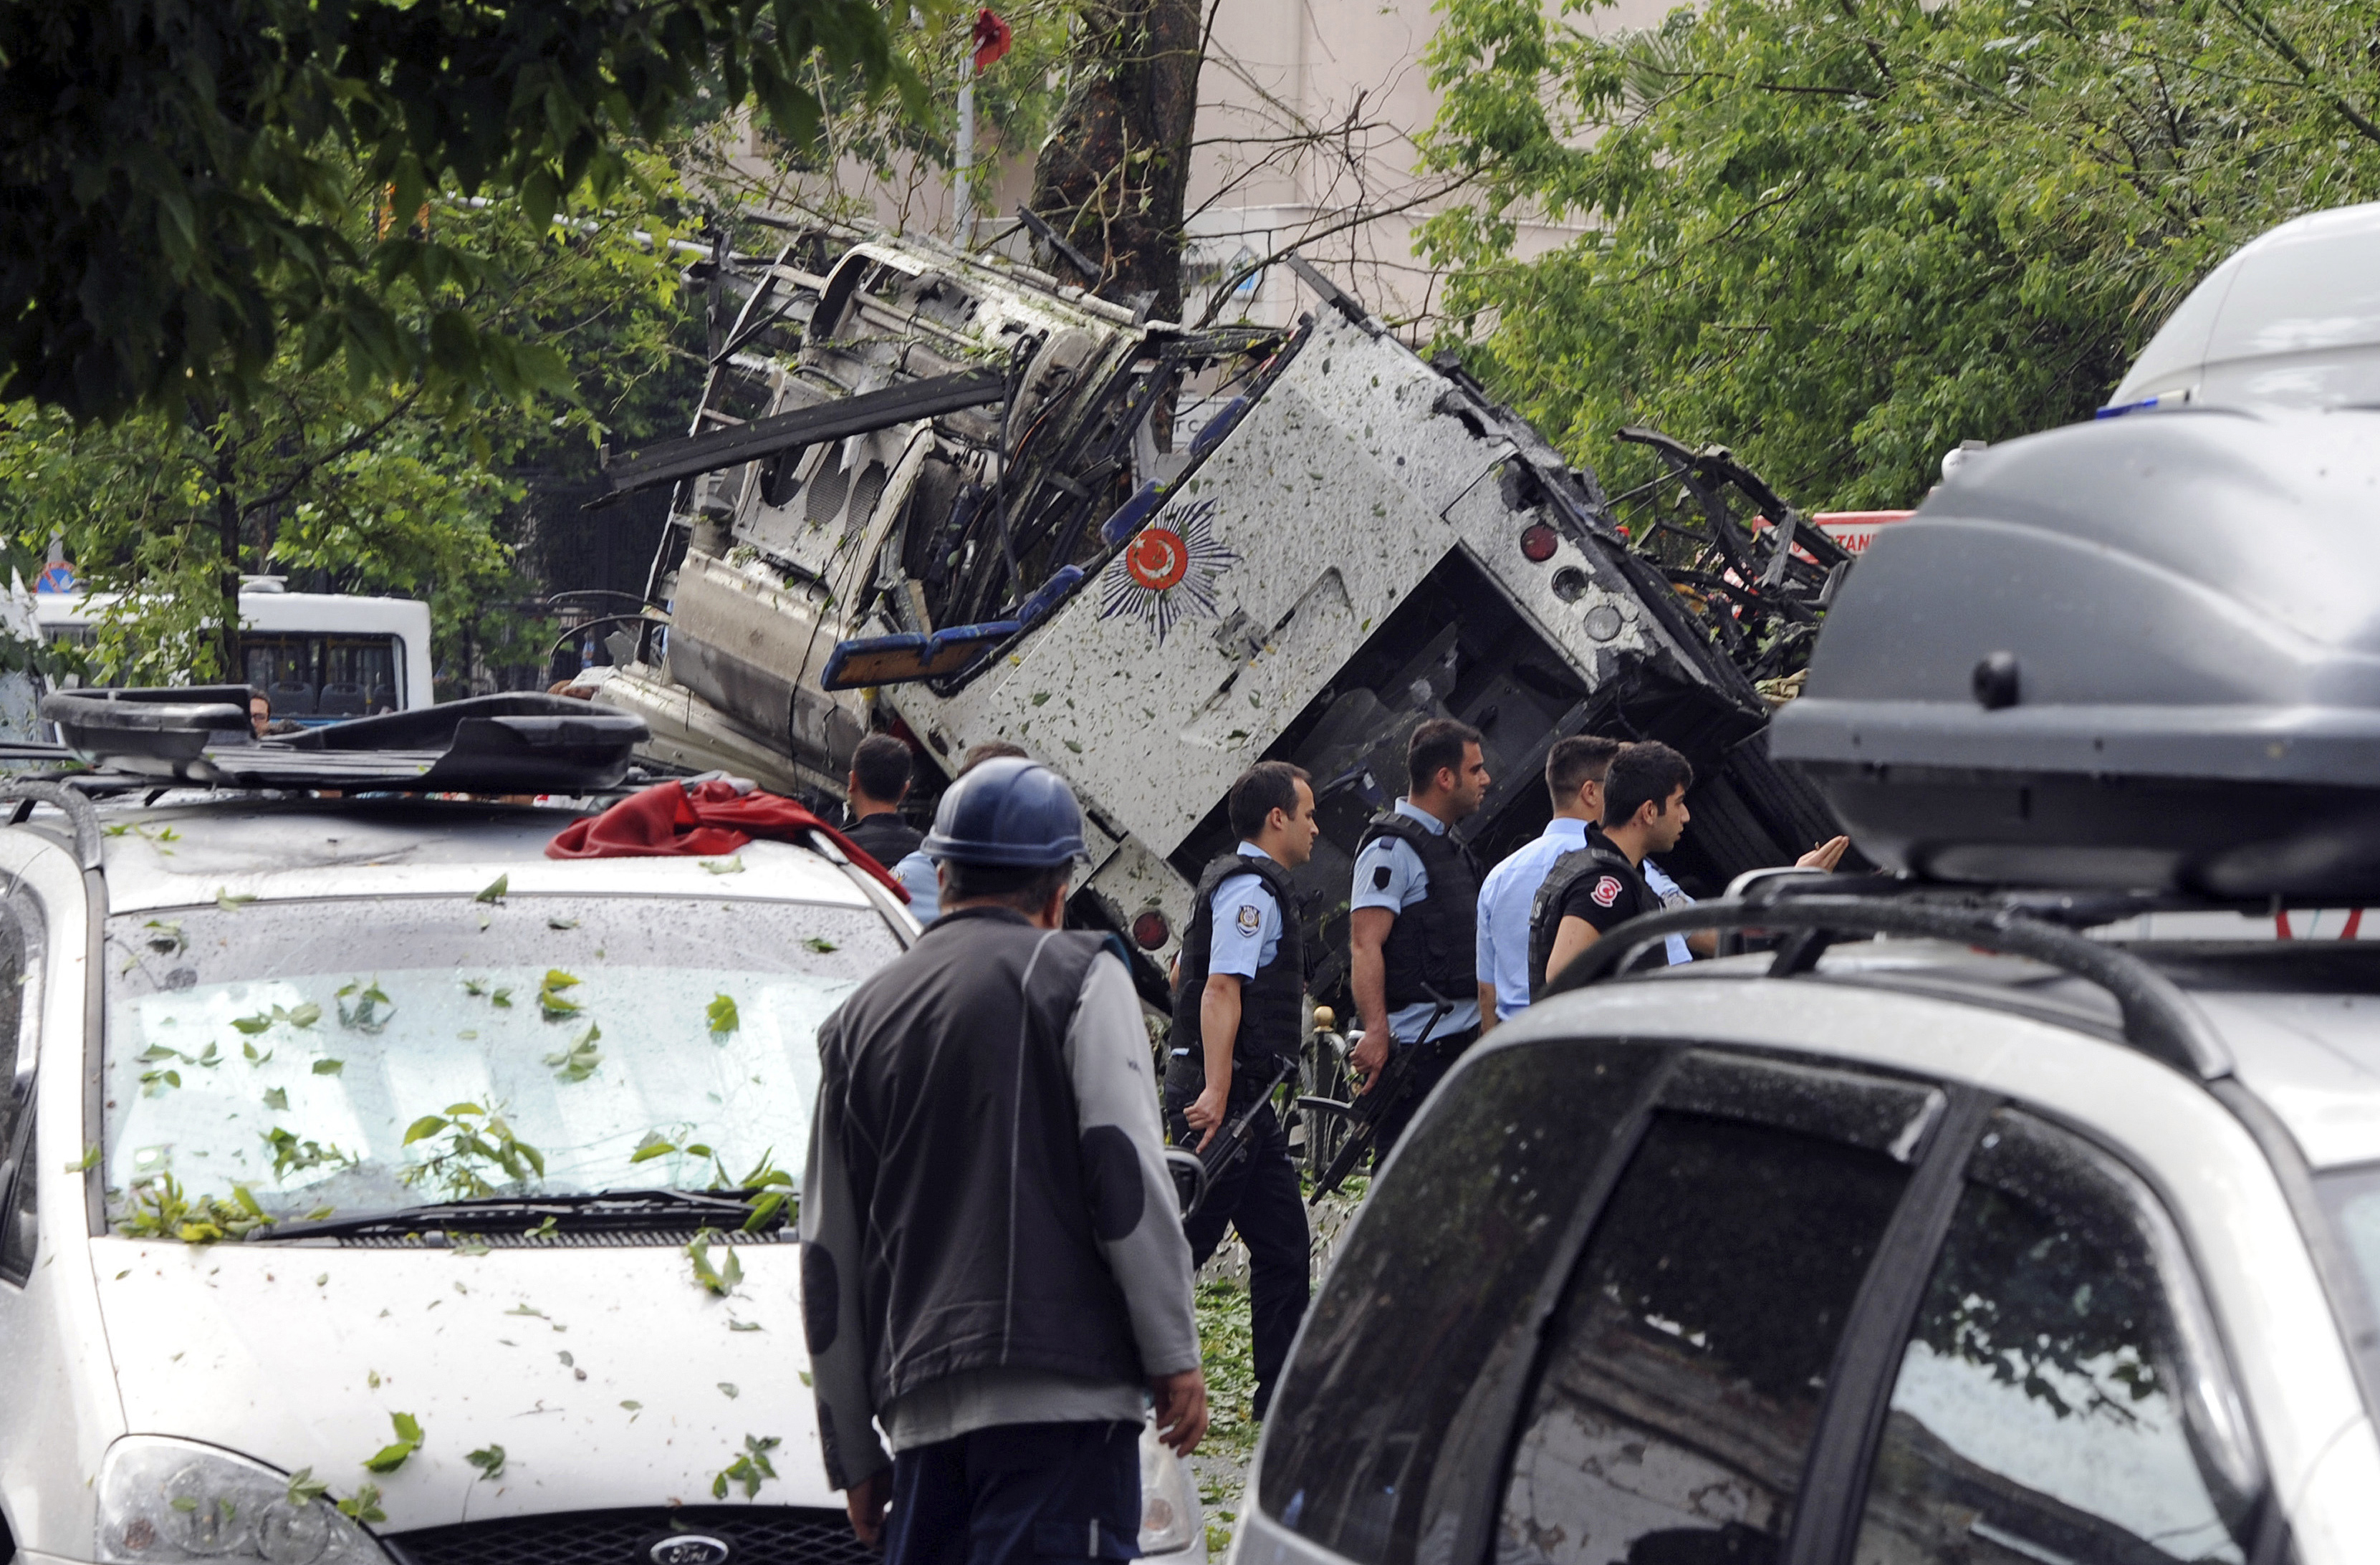 The site of the bomb explosion in Istanbul on June 7.